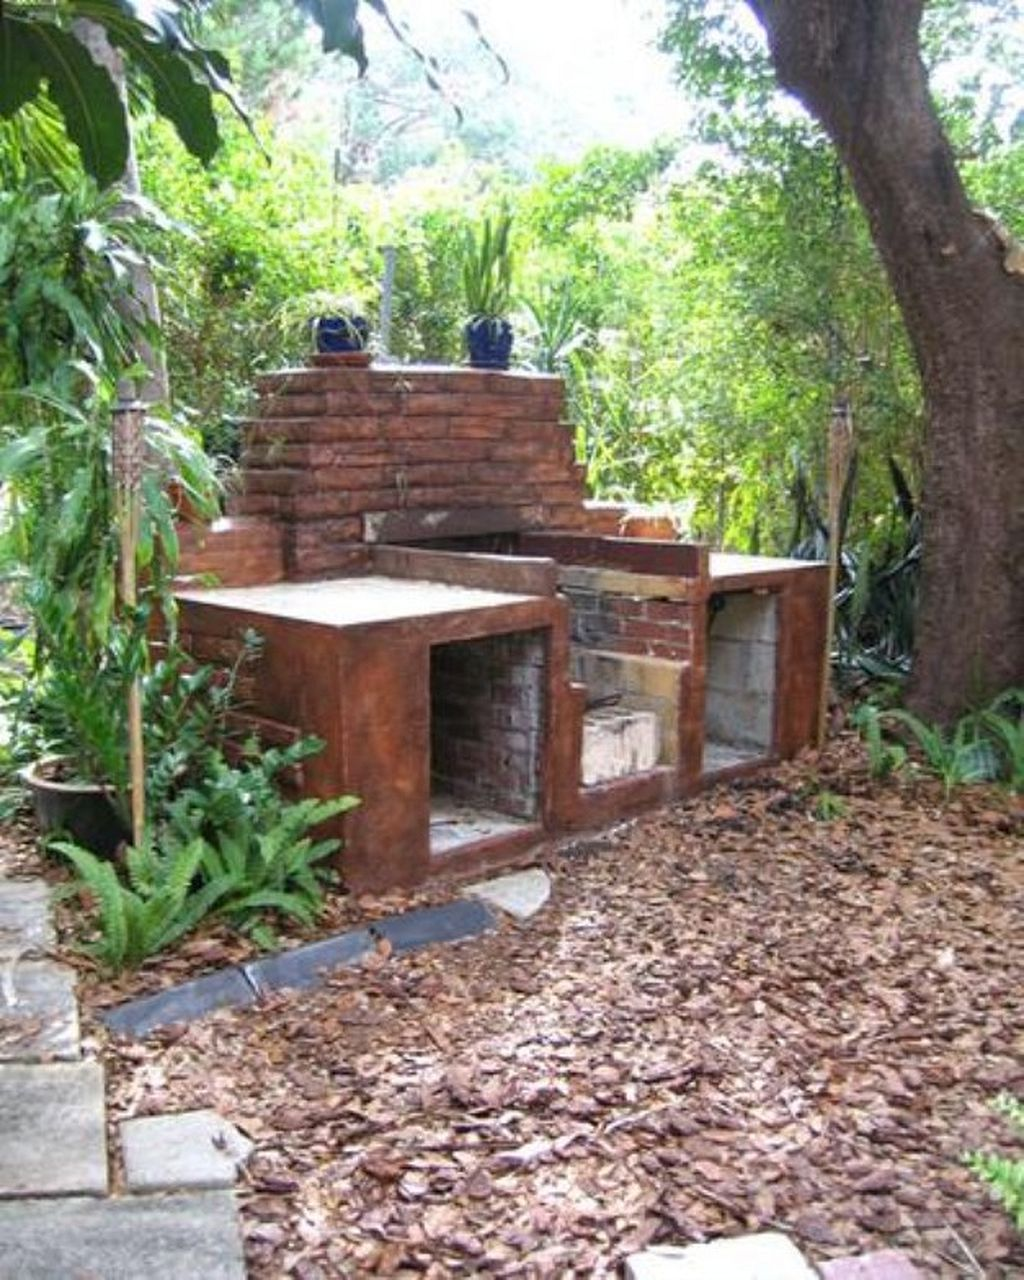 How to Make Yourself Backyard Brick Grill | Brick bbq, Diy ...